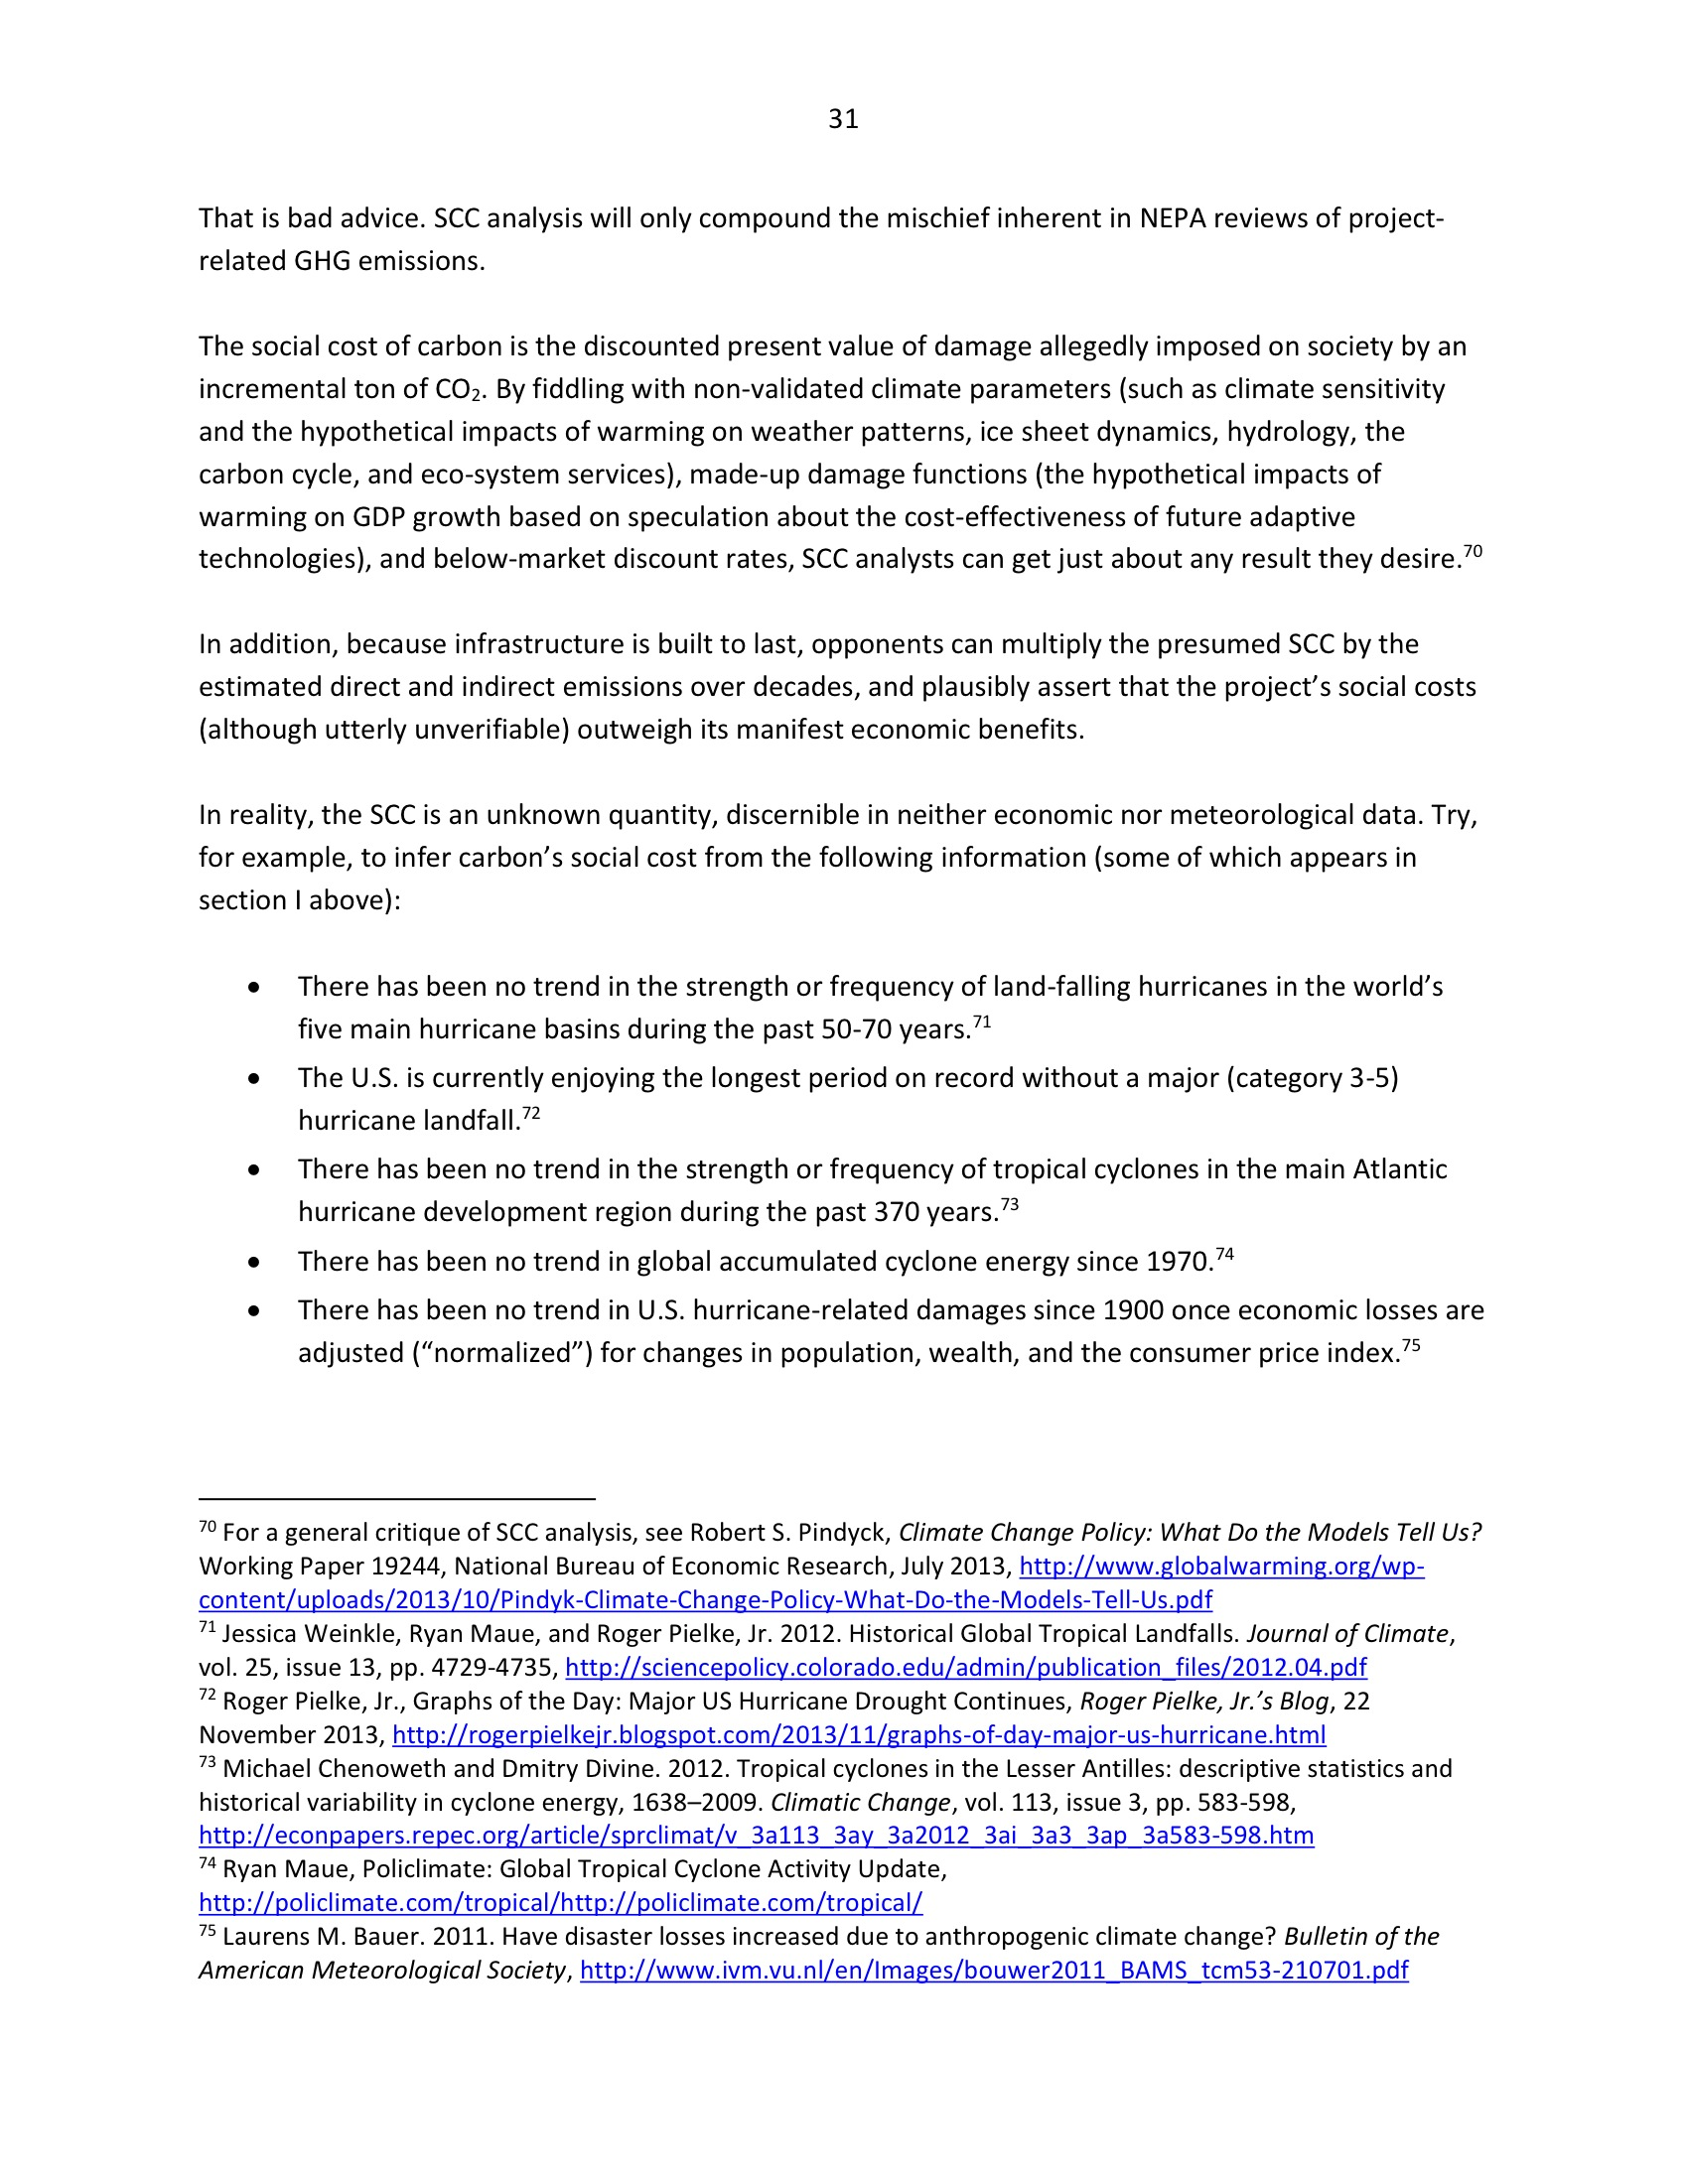 Marlo Lewis Competitive Enterprise Institute and Free Market Allies Comment Letter on NEPA GHG Guidance Document 103-31